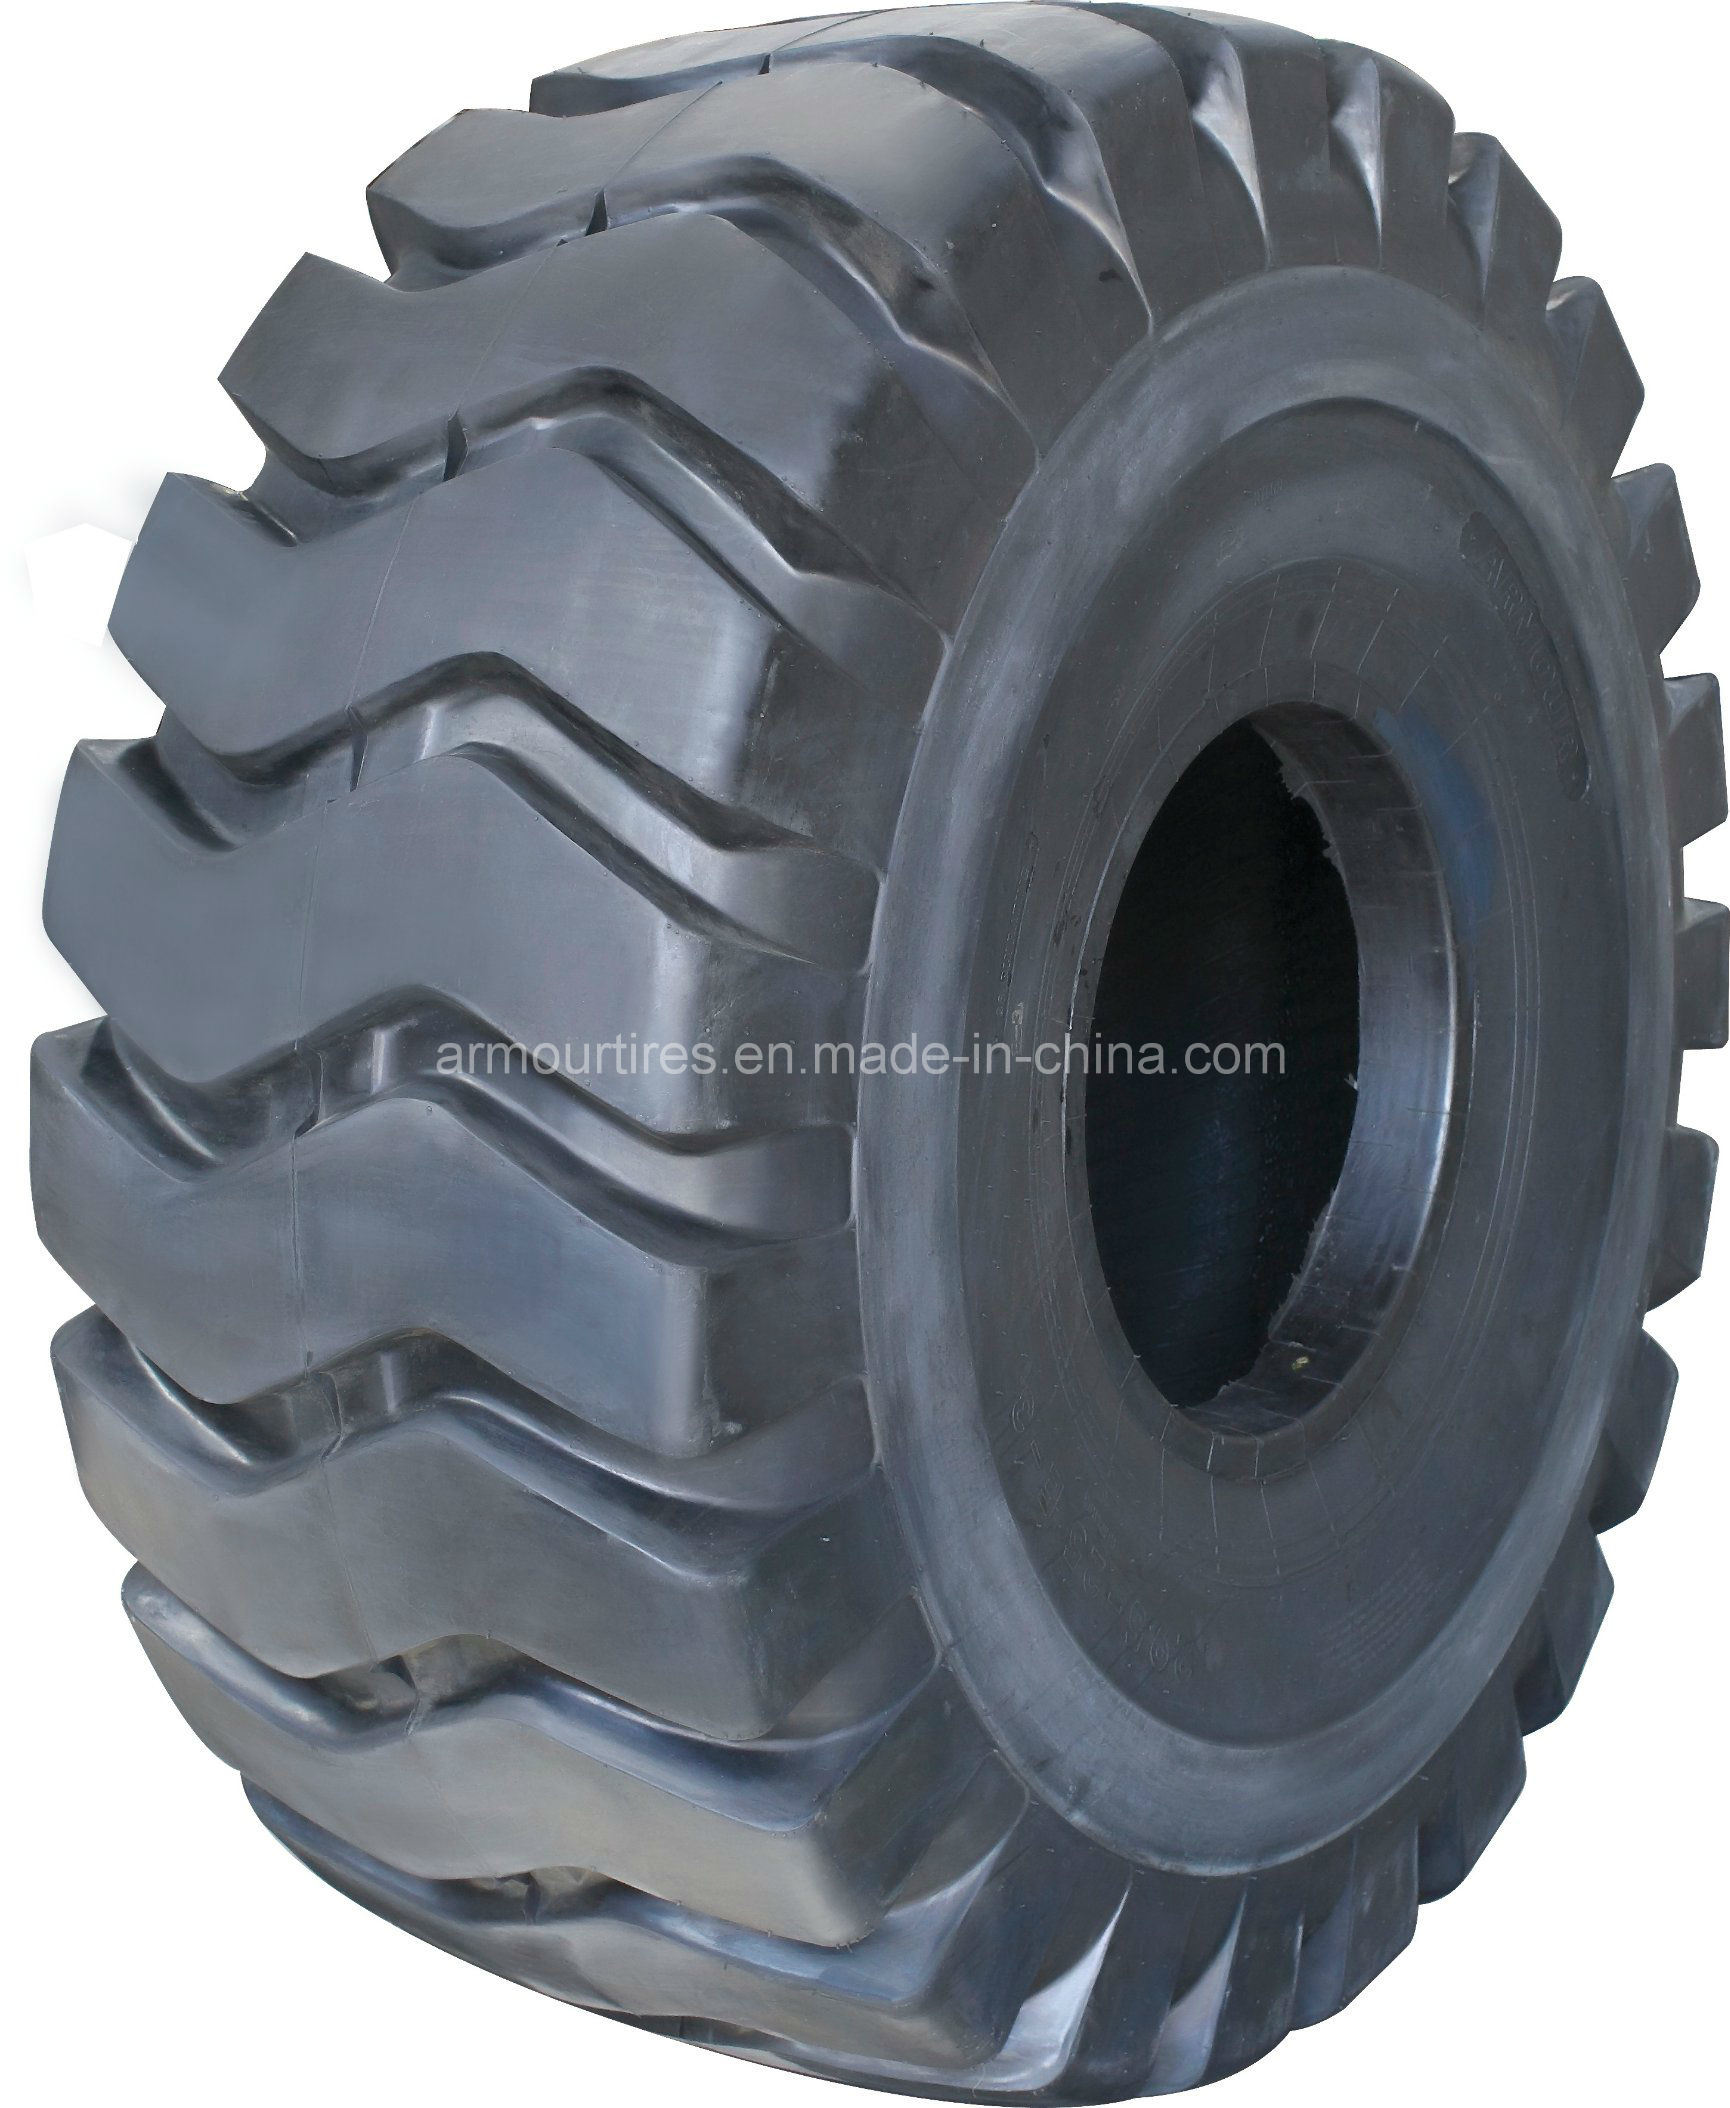 Armour 17.5-25 E3/L3 OTR Tyre for Wheel Loader Purpose (CATERPILLAR, DOOSAN, XCMG, LIUGONG)